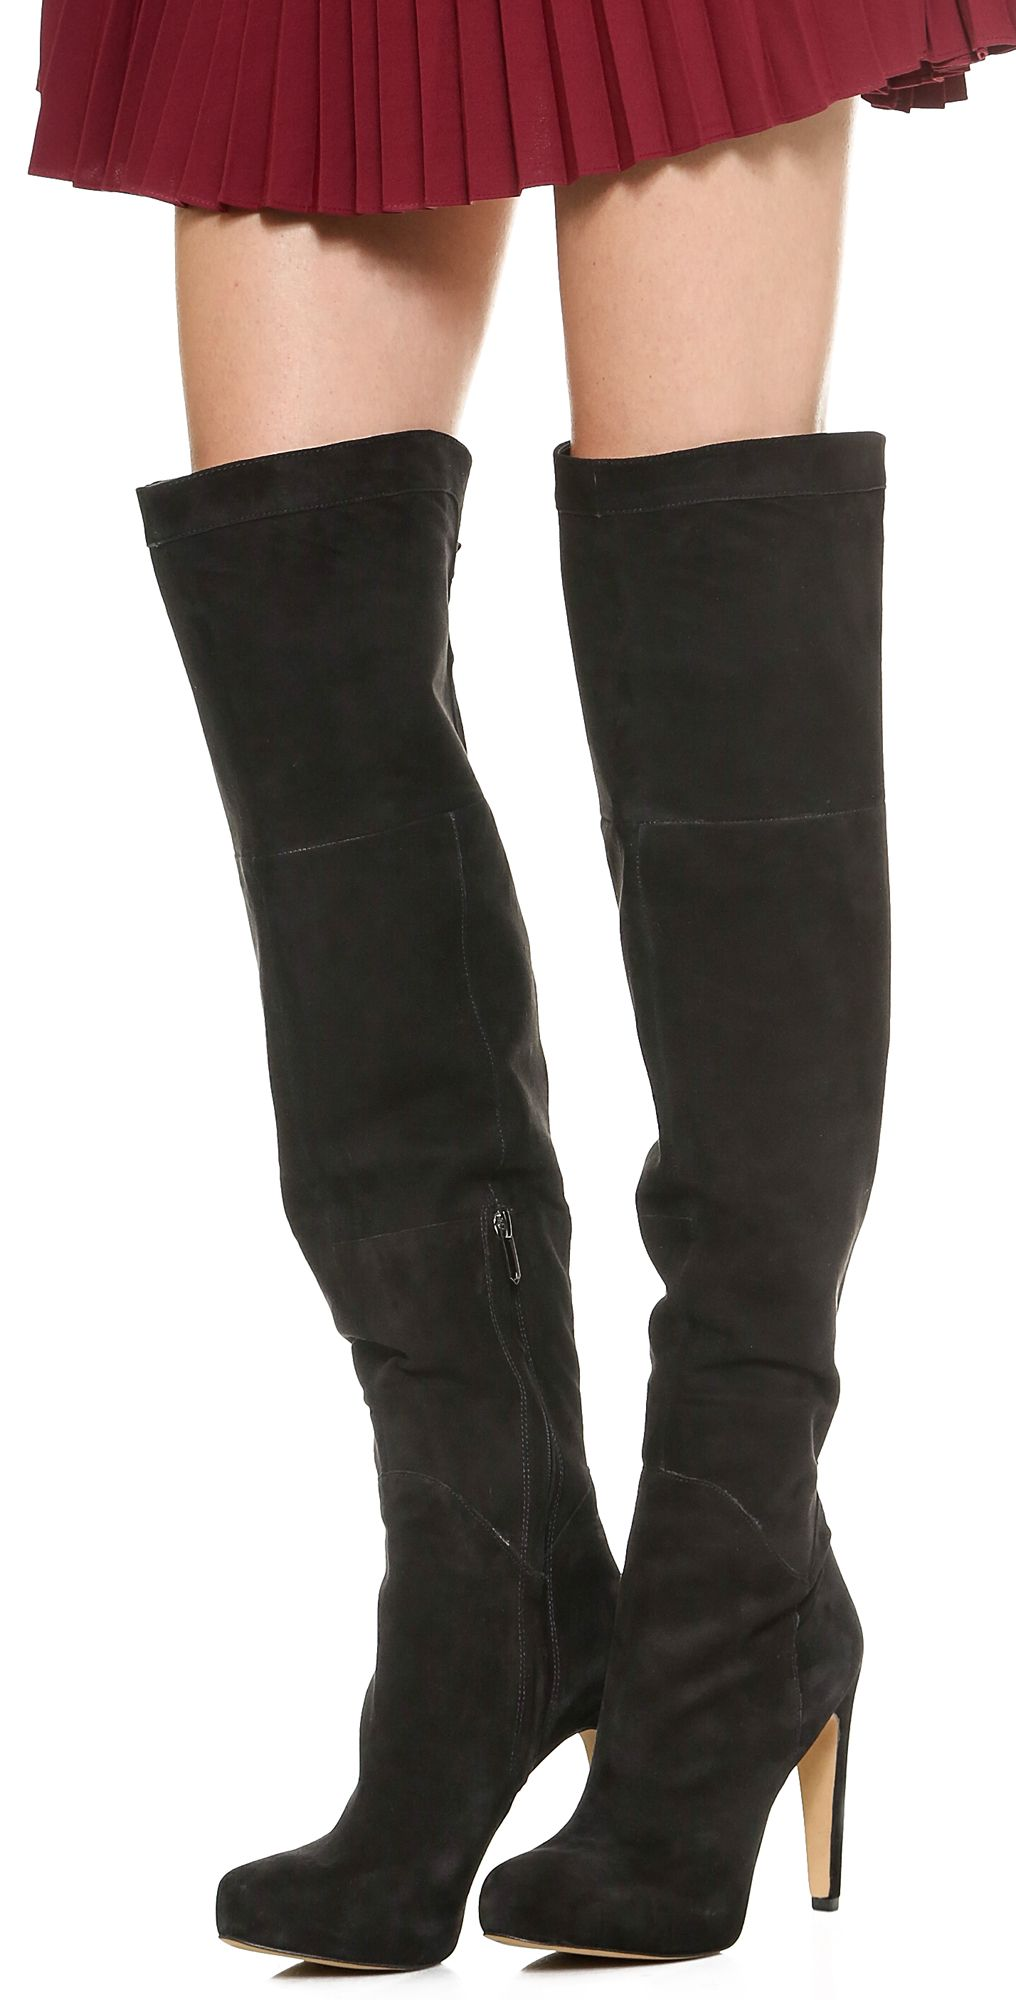 c3f0842c7cc066 Sam Edelman Kayla Suede Over the Knee Boots